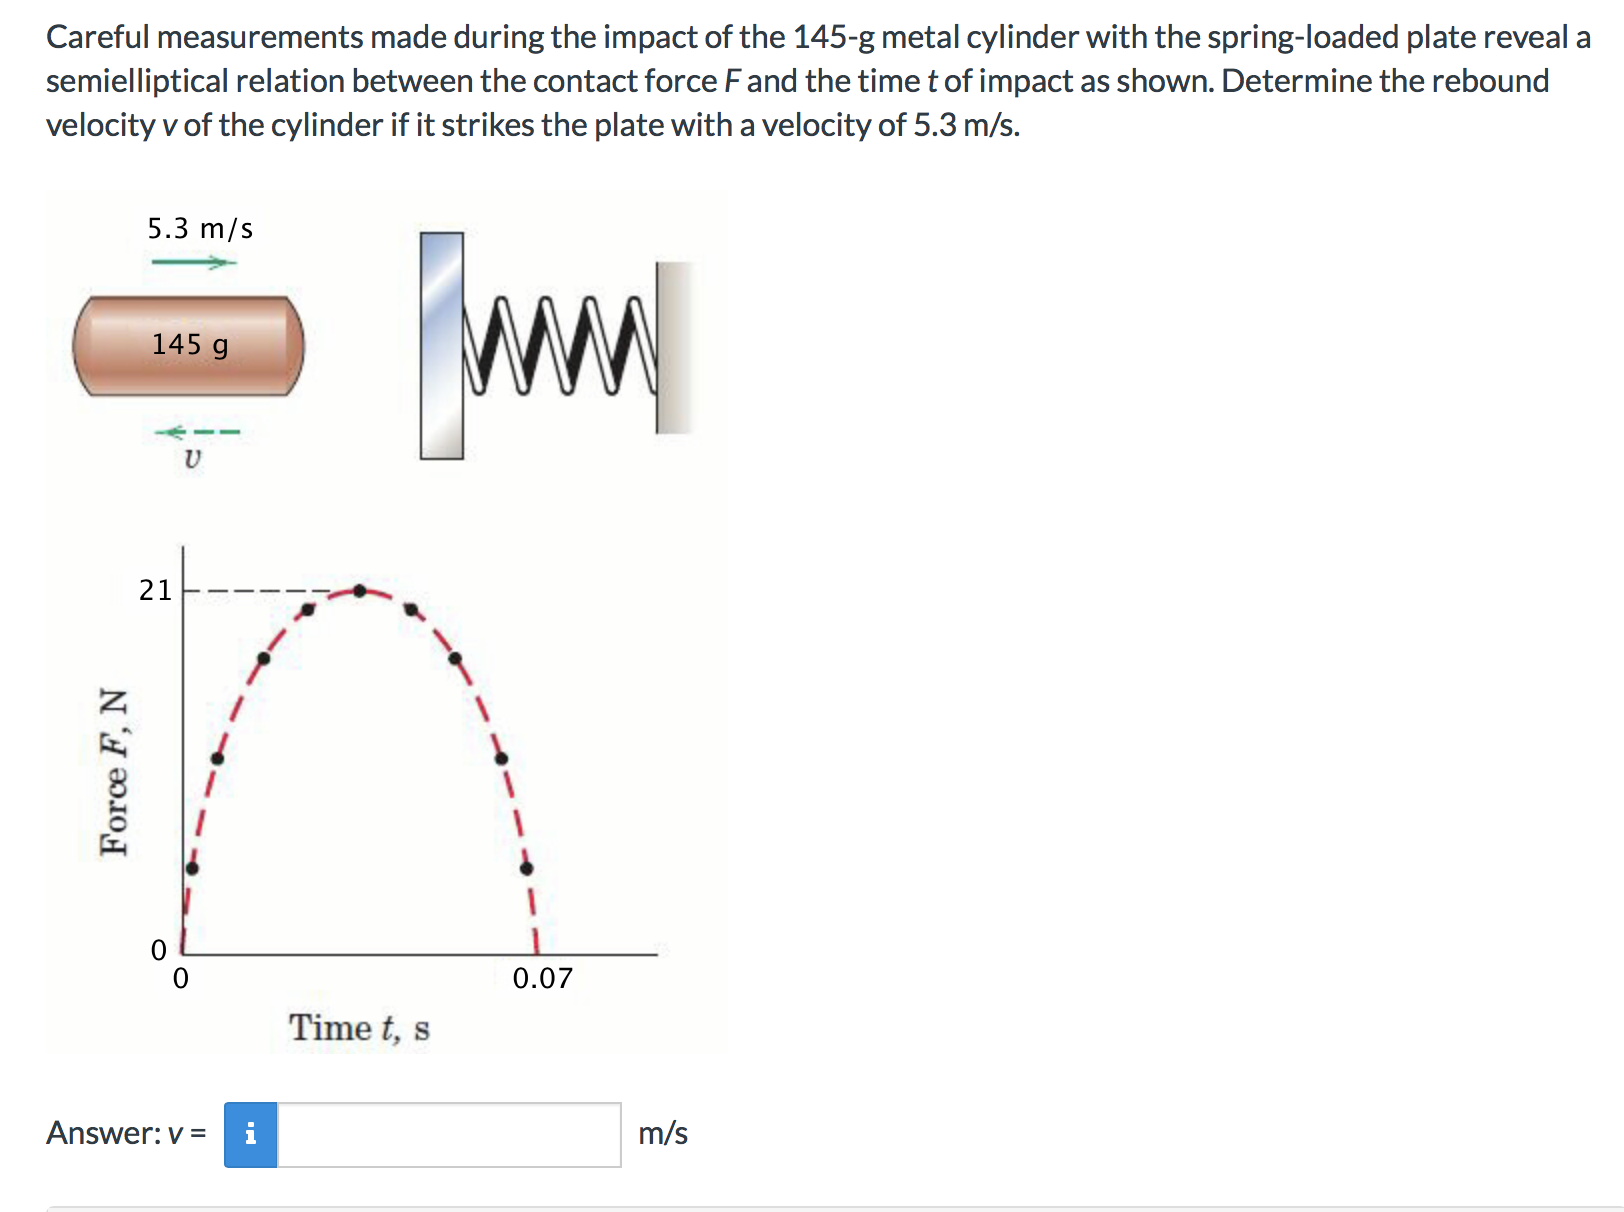 Careful measurements made during the impact of the 145-g metal cylinder with the spring-loaded plate reveal a semielliptical relation between the contact force Fand the time t of impact as shown. Determine the rebound velocity v of the cylinder if it strikes the plate with a velocity of 5.3 m/s. 5.3 m/s 145 g U 21 0.07 Time t, s Answer: v m/s Force F. N